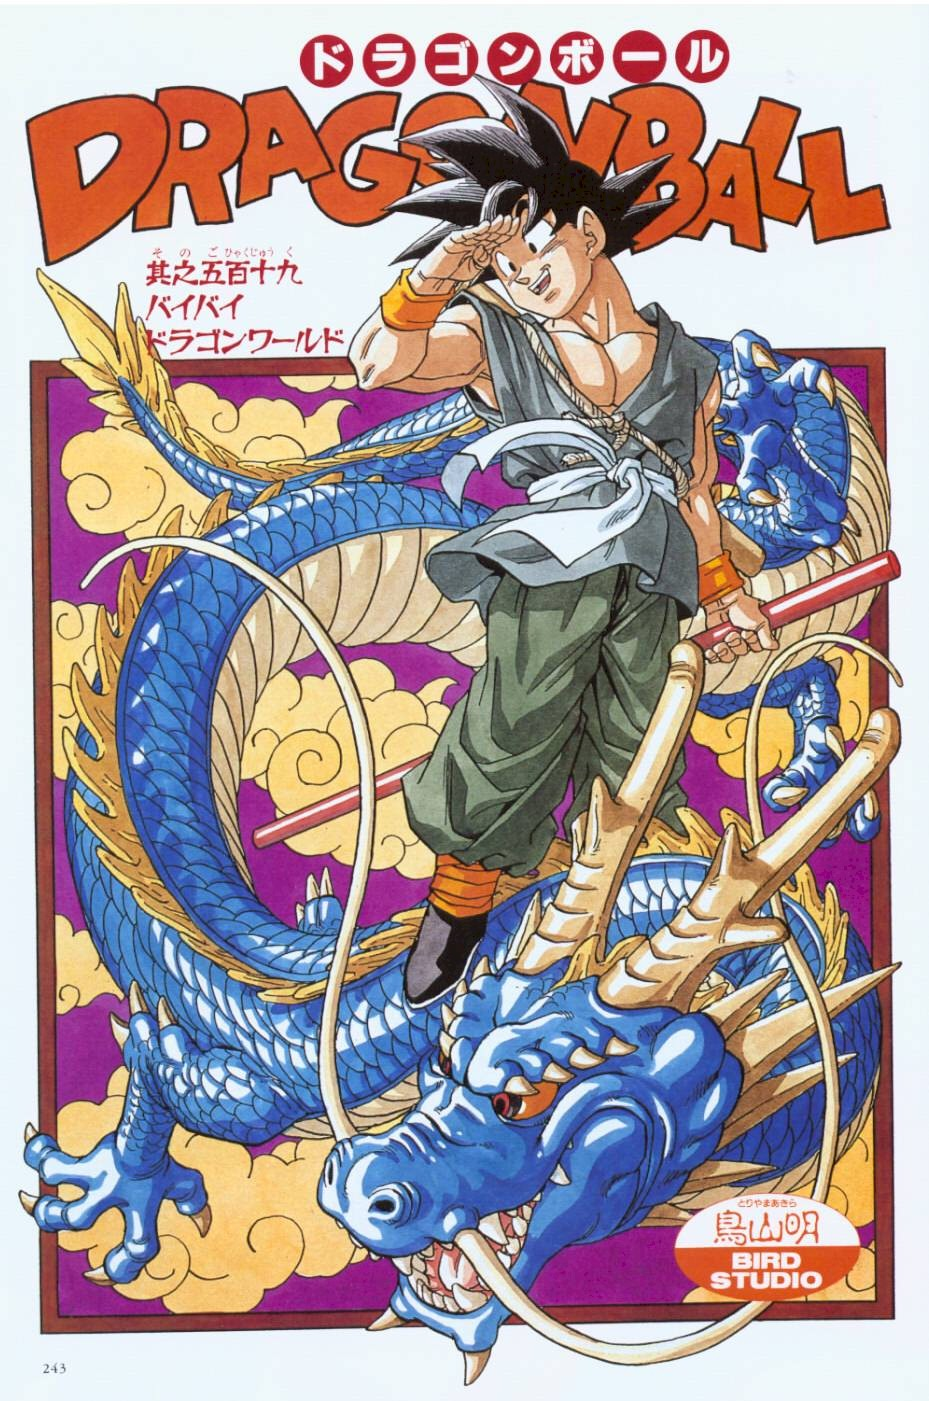 Doujinshi dragon ball